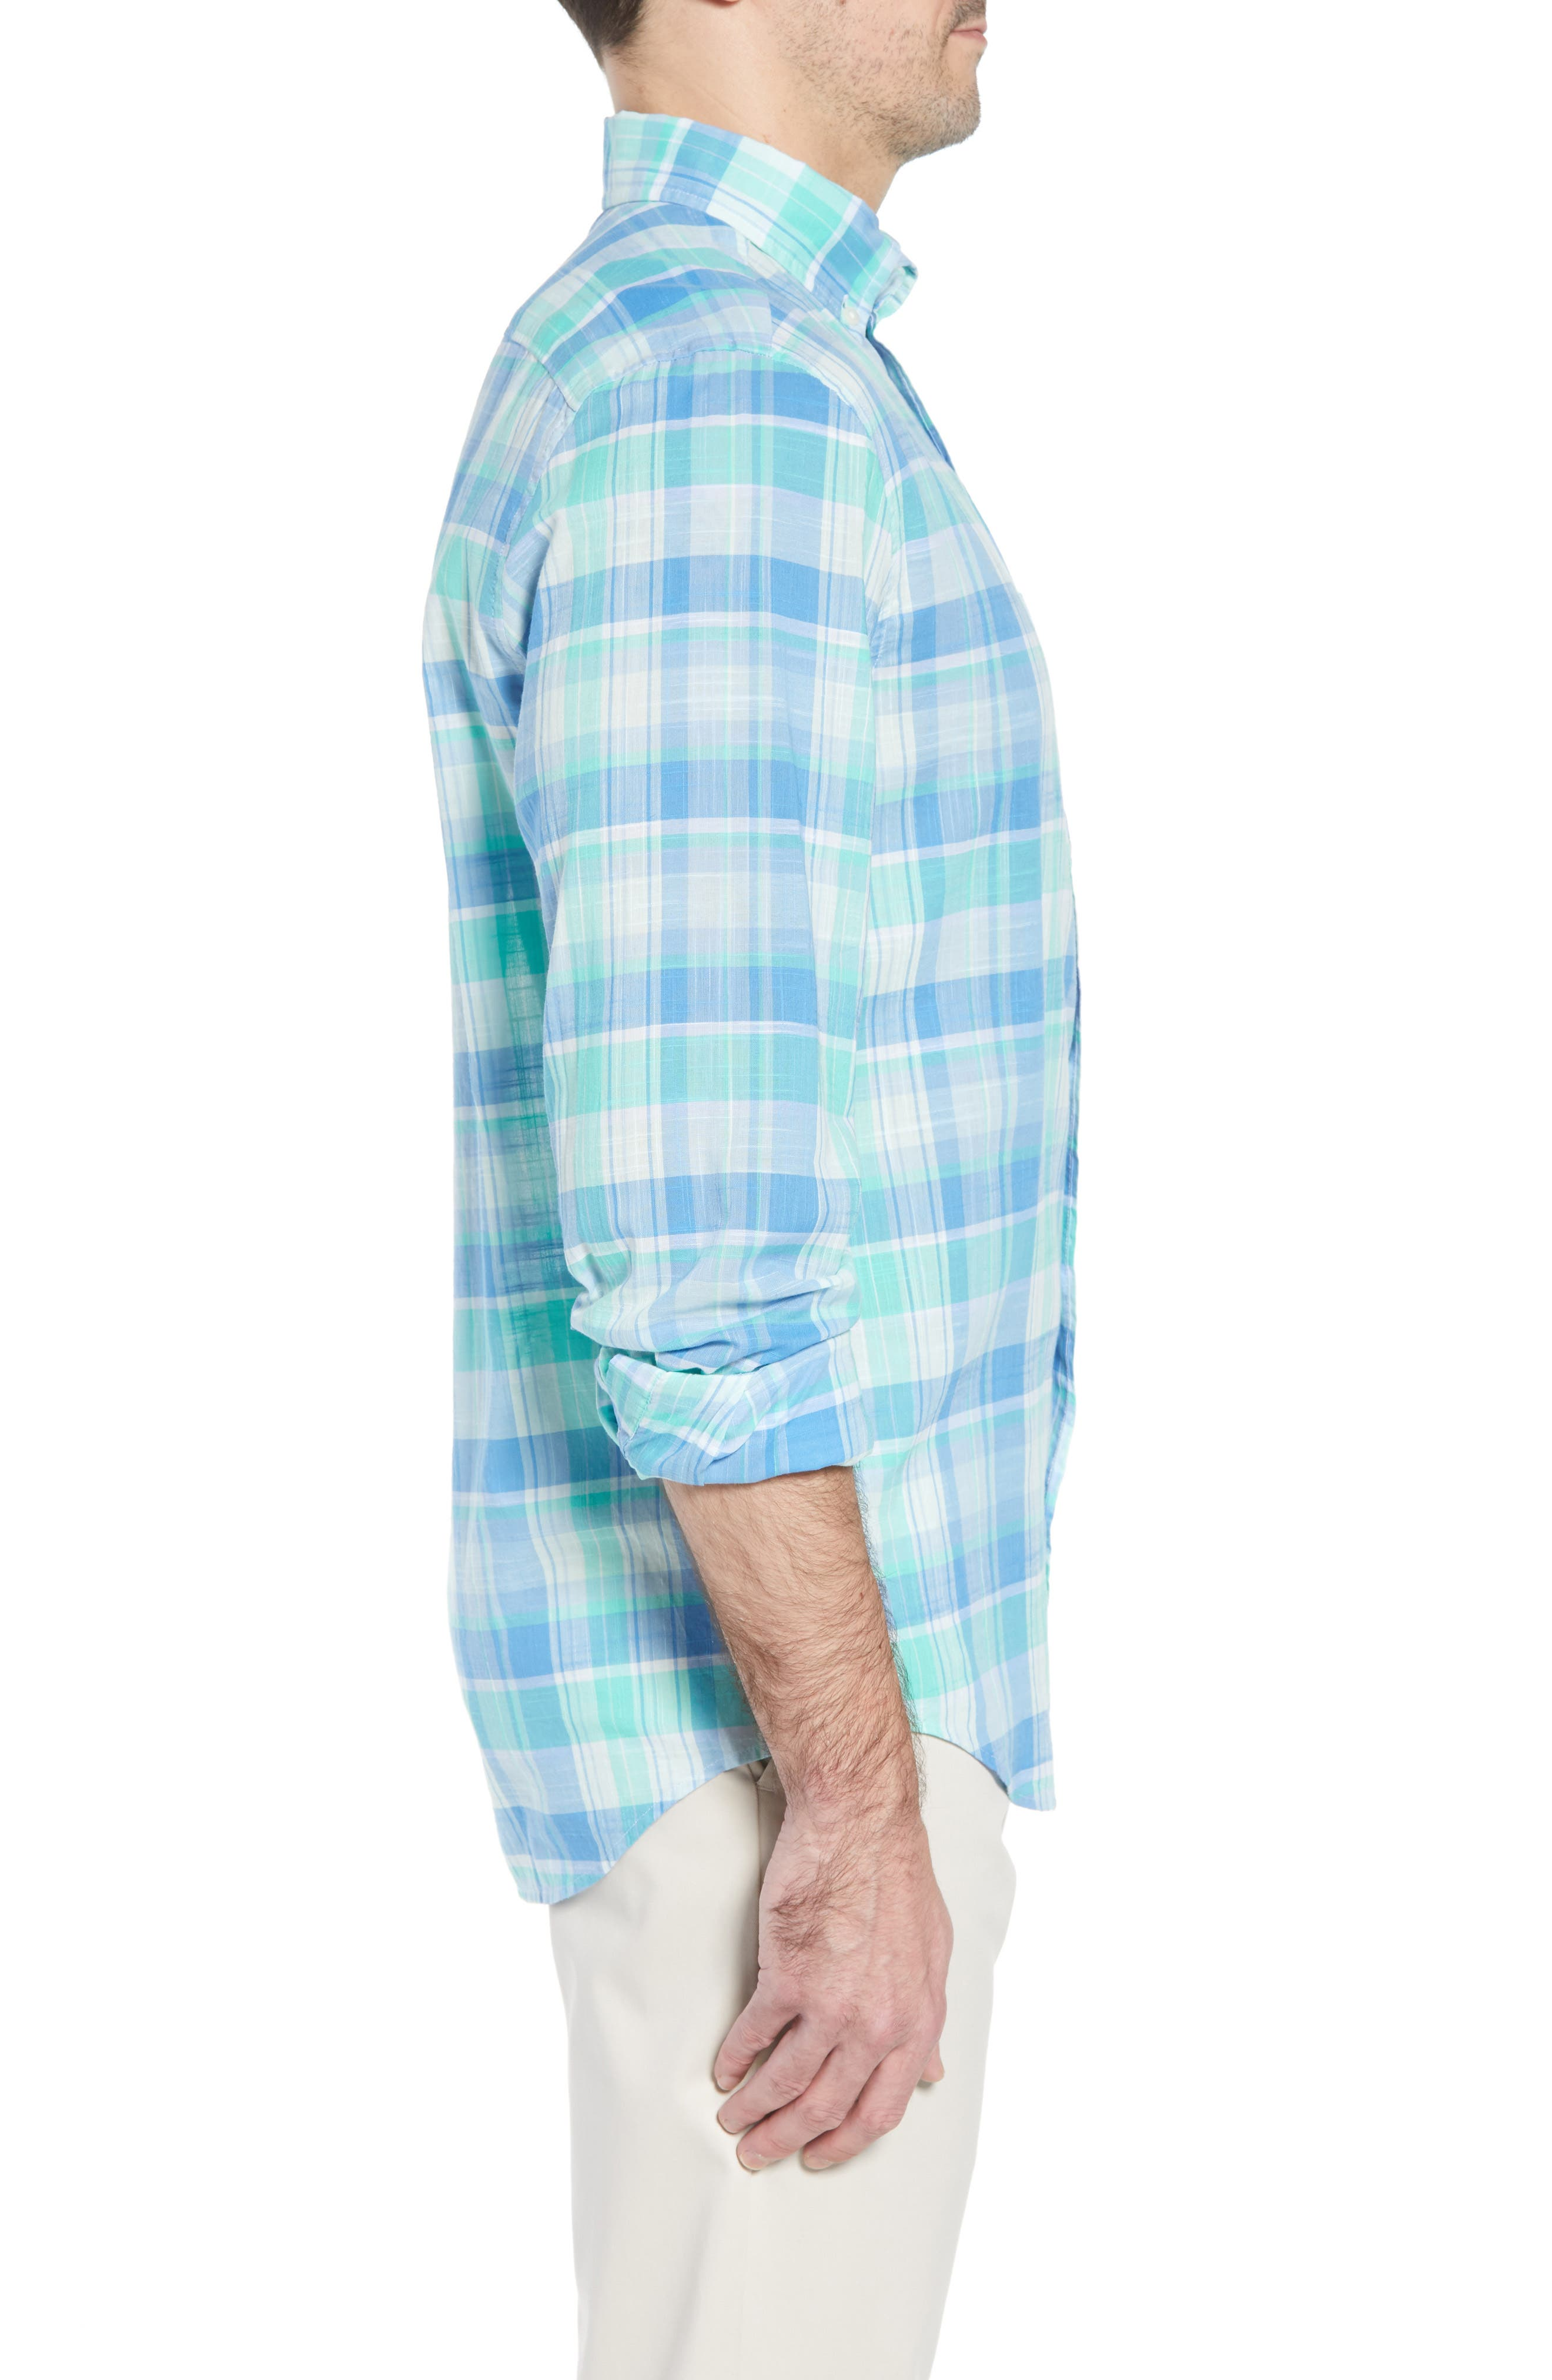 Homer Pond Murray Classic Fit Plaid Sport Shirt,                             Alternate thumbnail 3, color,                             359